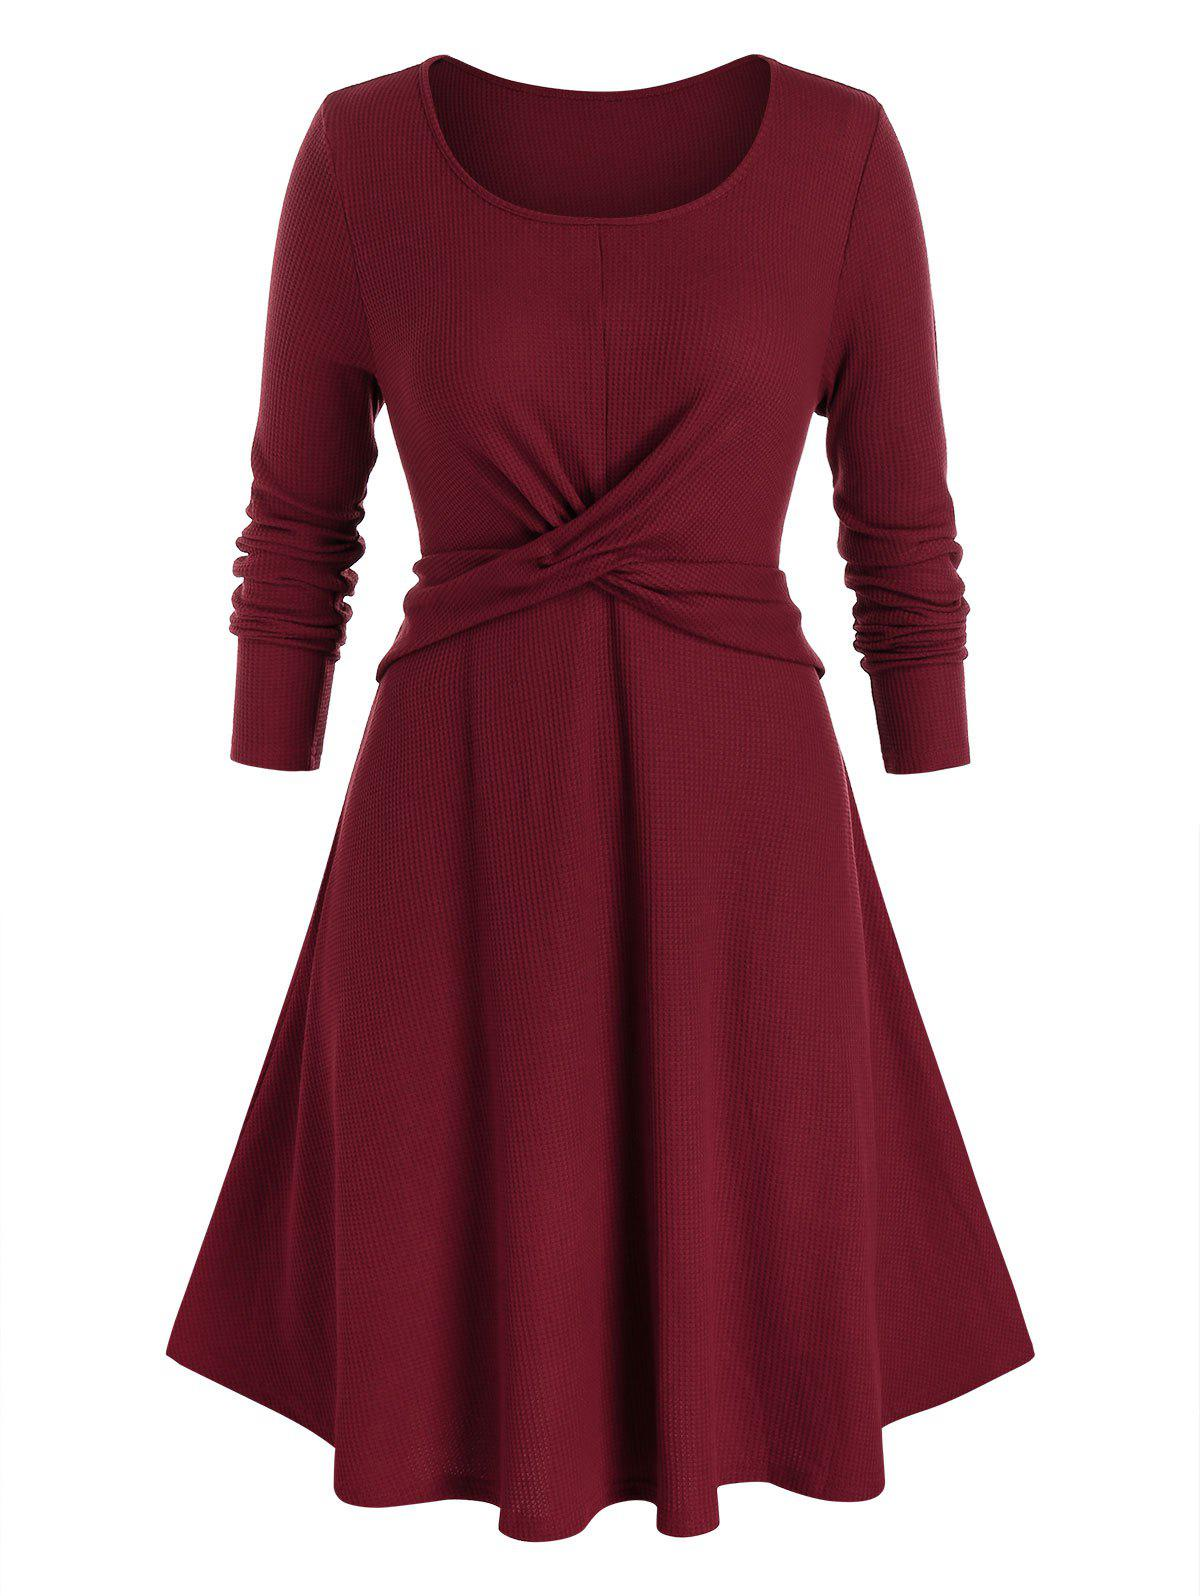 Plus Size A Line Front Cross Dress - RED WINE 5X